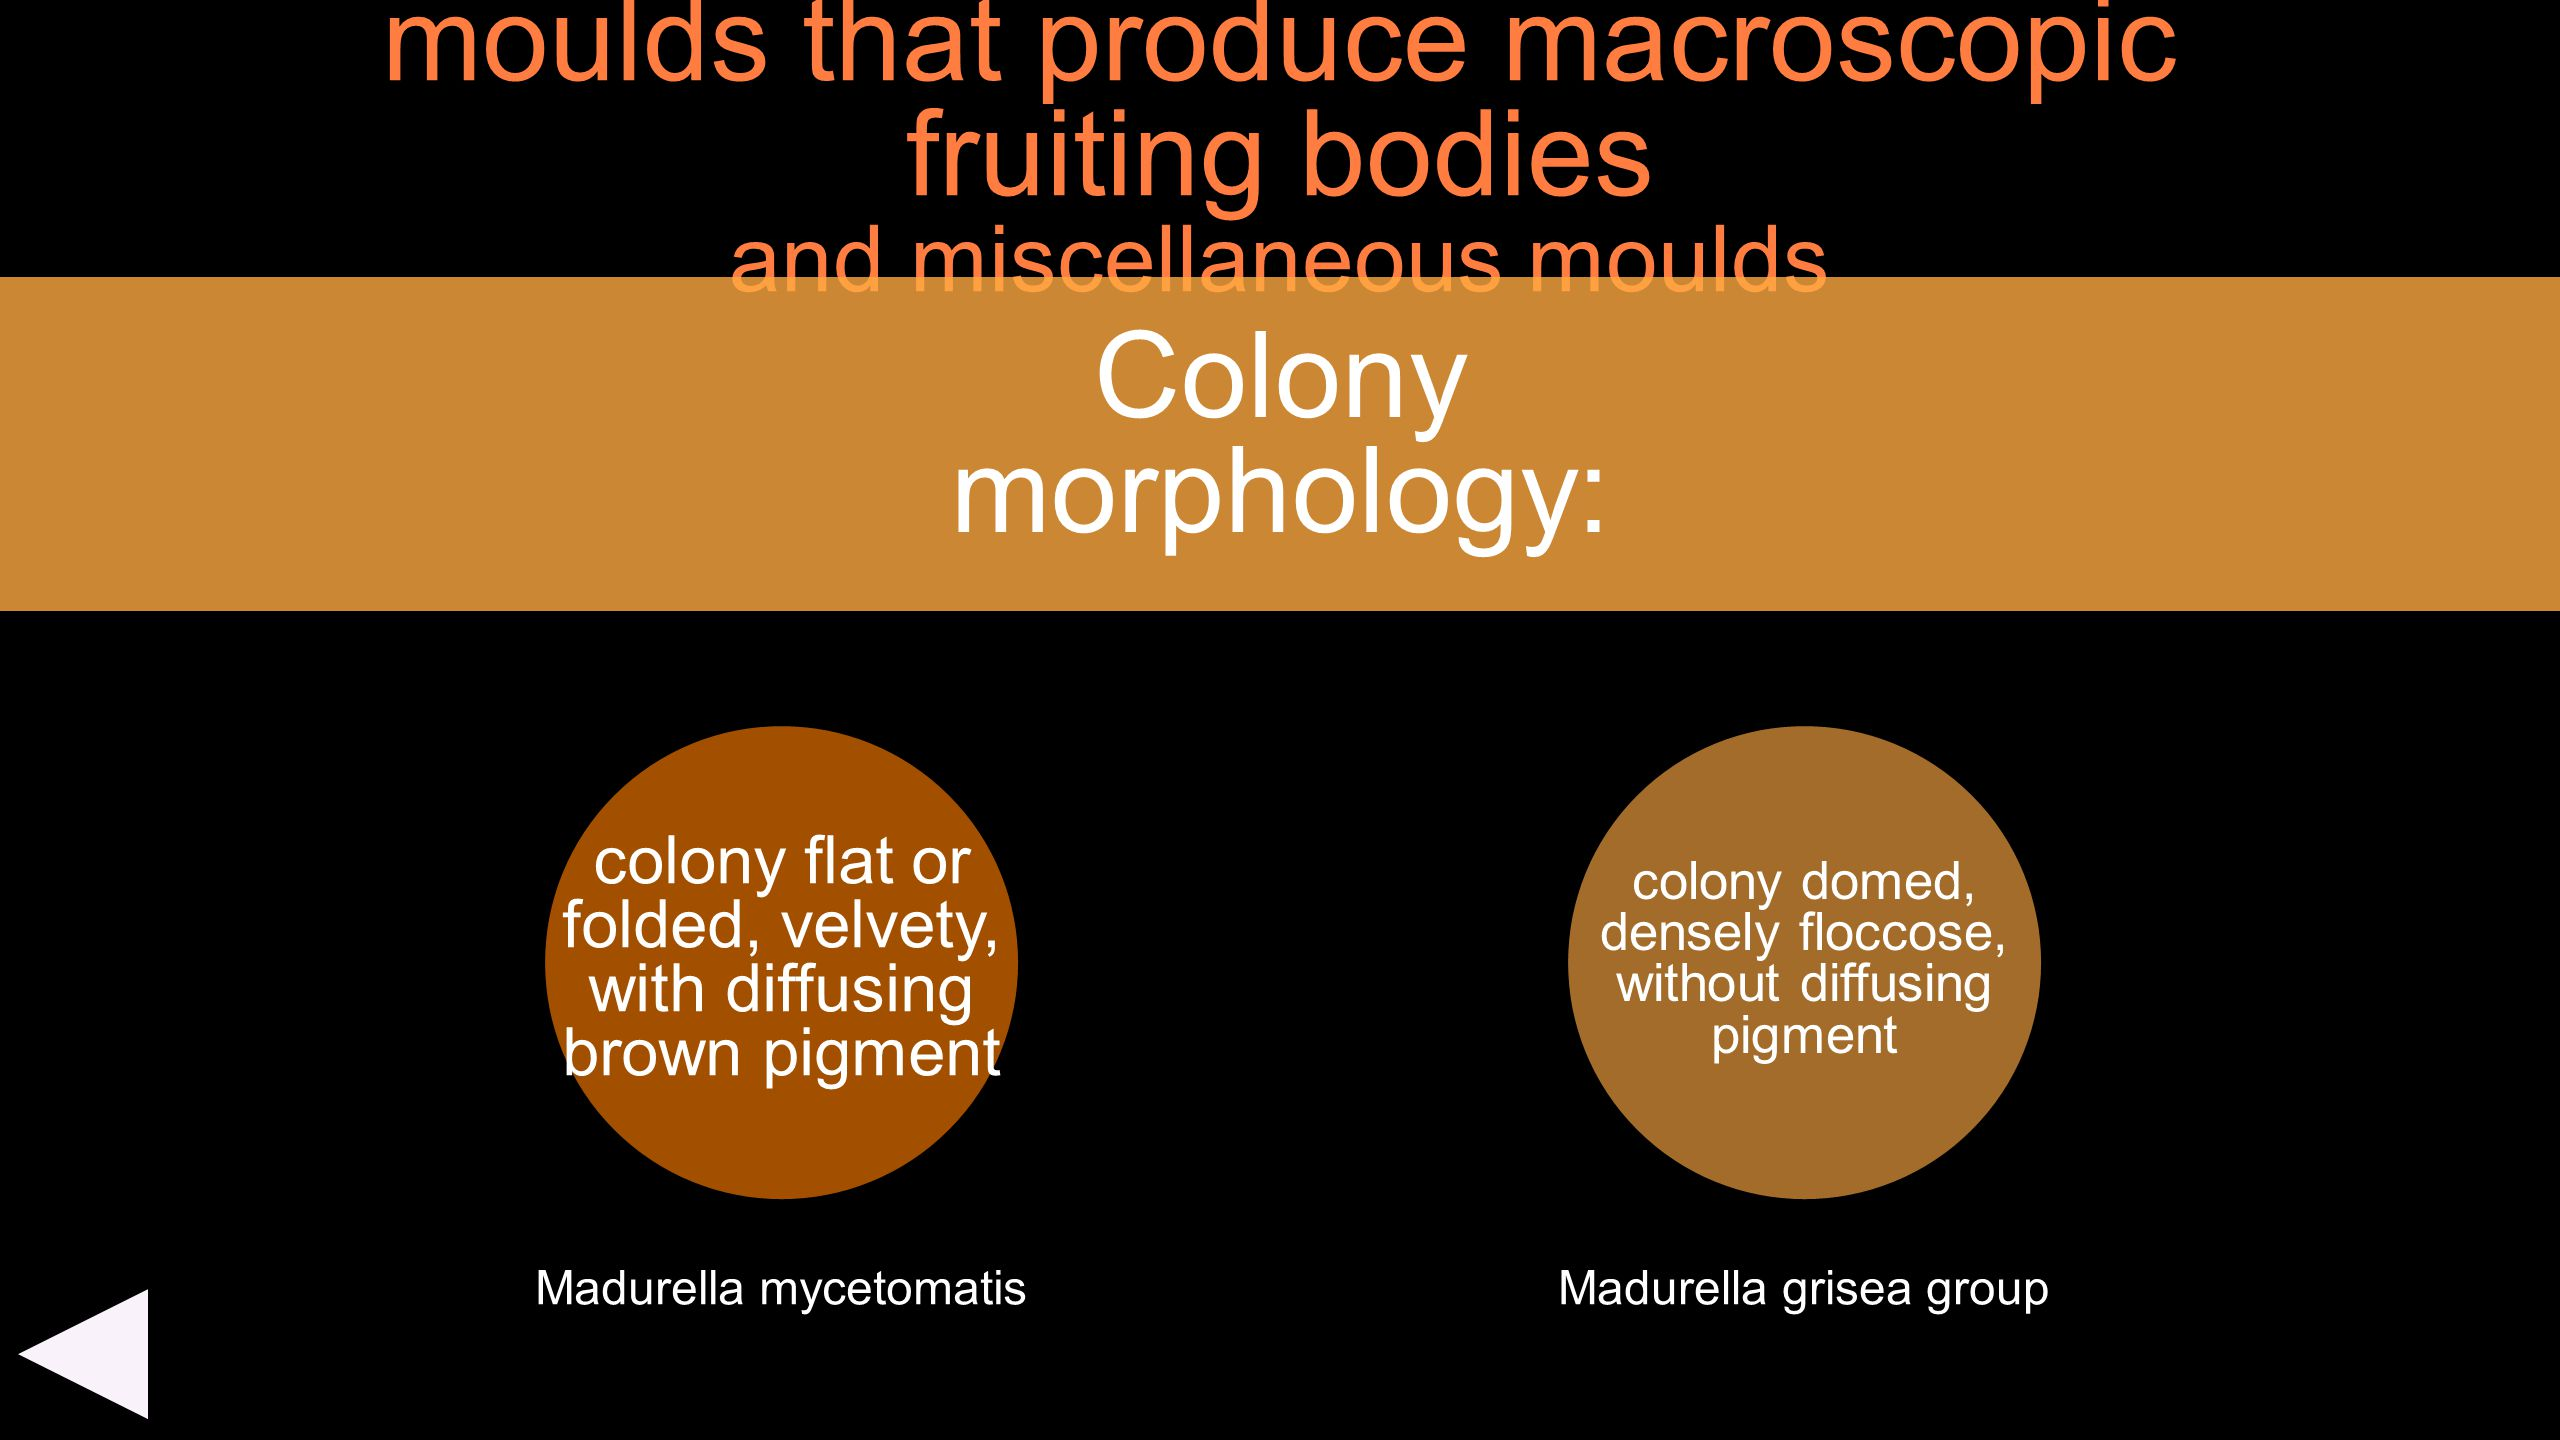 moulds that produce macroscopic fruiting bodies